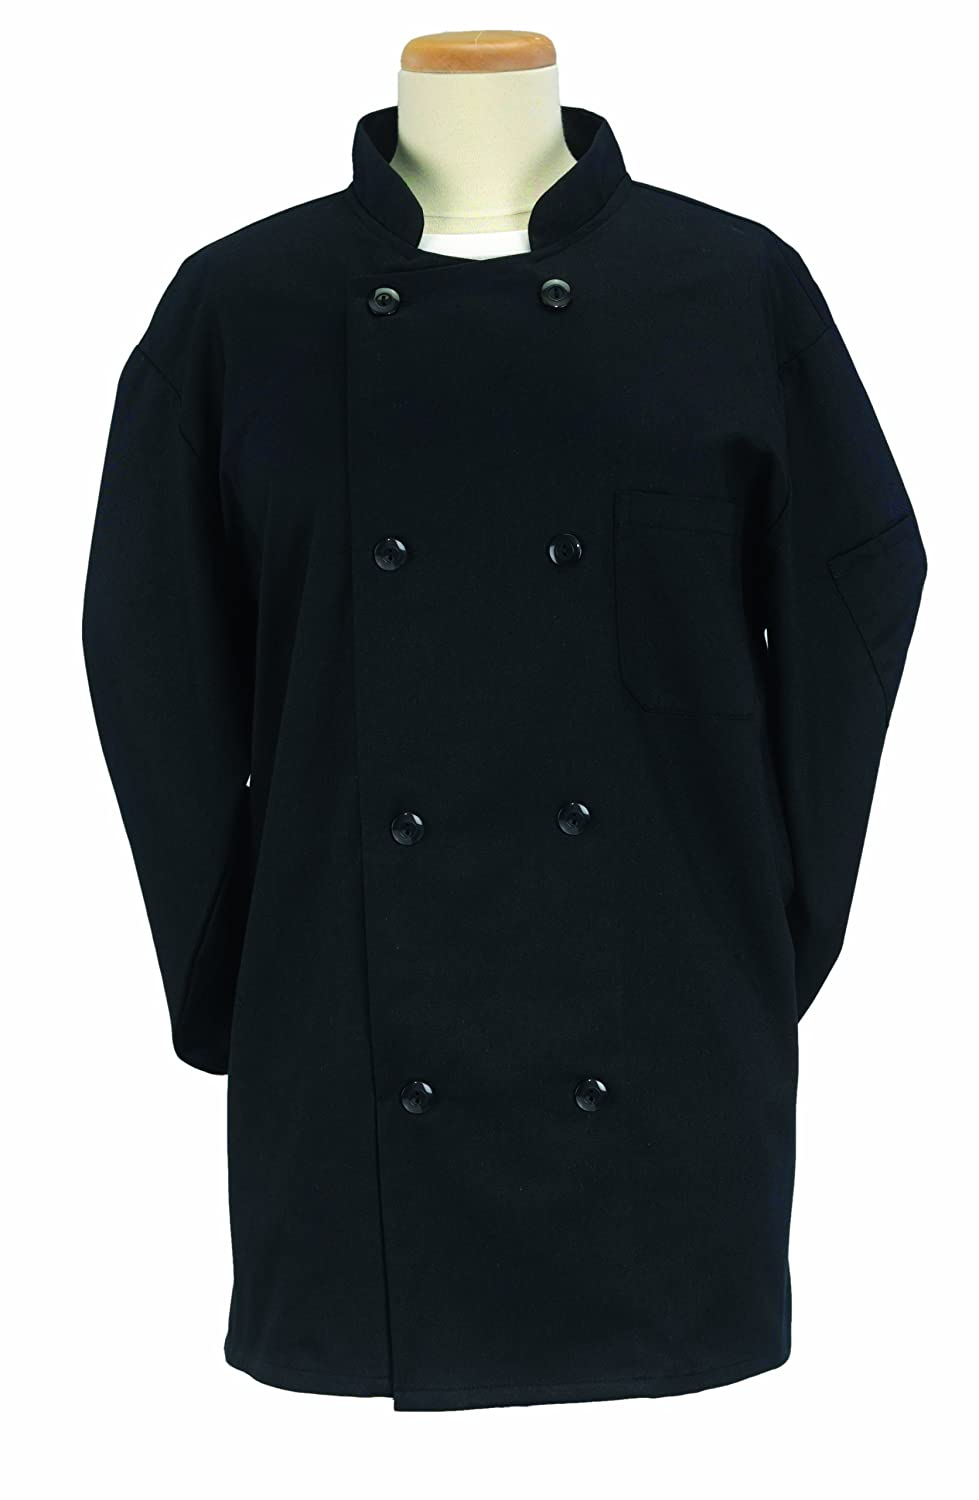 Ritz 70033 Pro Series Large Chef's Jacket, Black